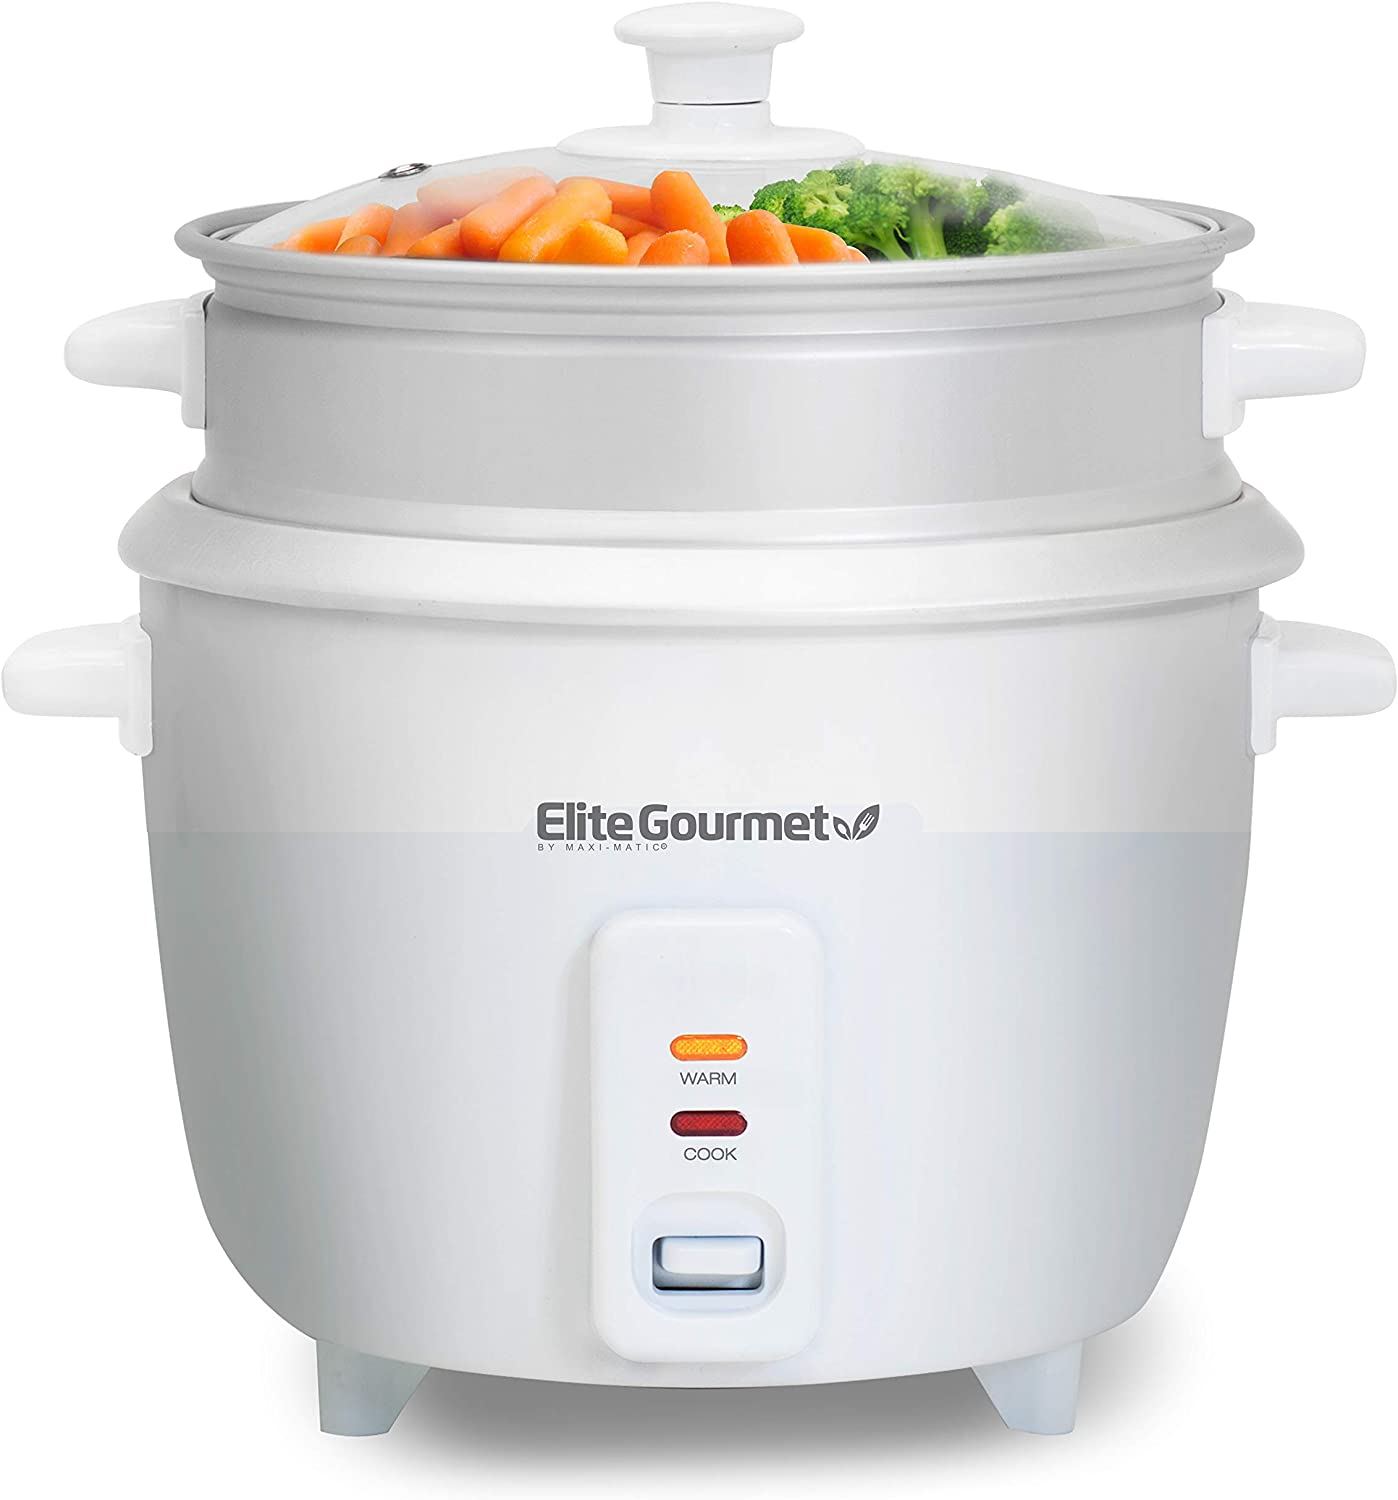 Maxi-Matic Rice Cooker, 16 Cup, White